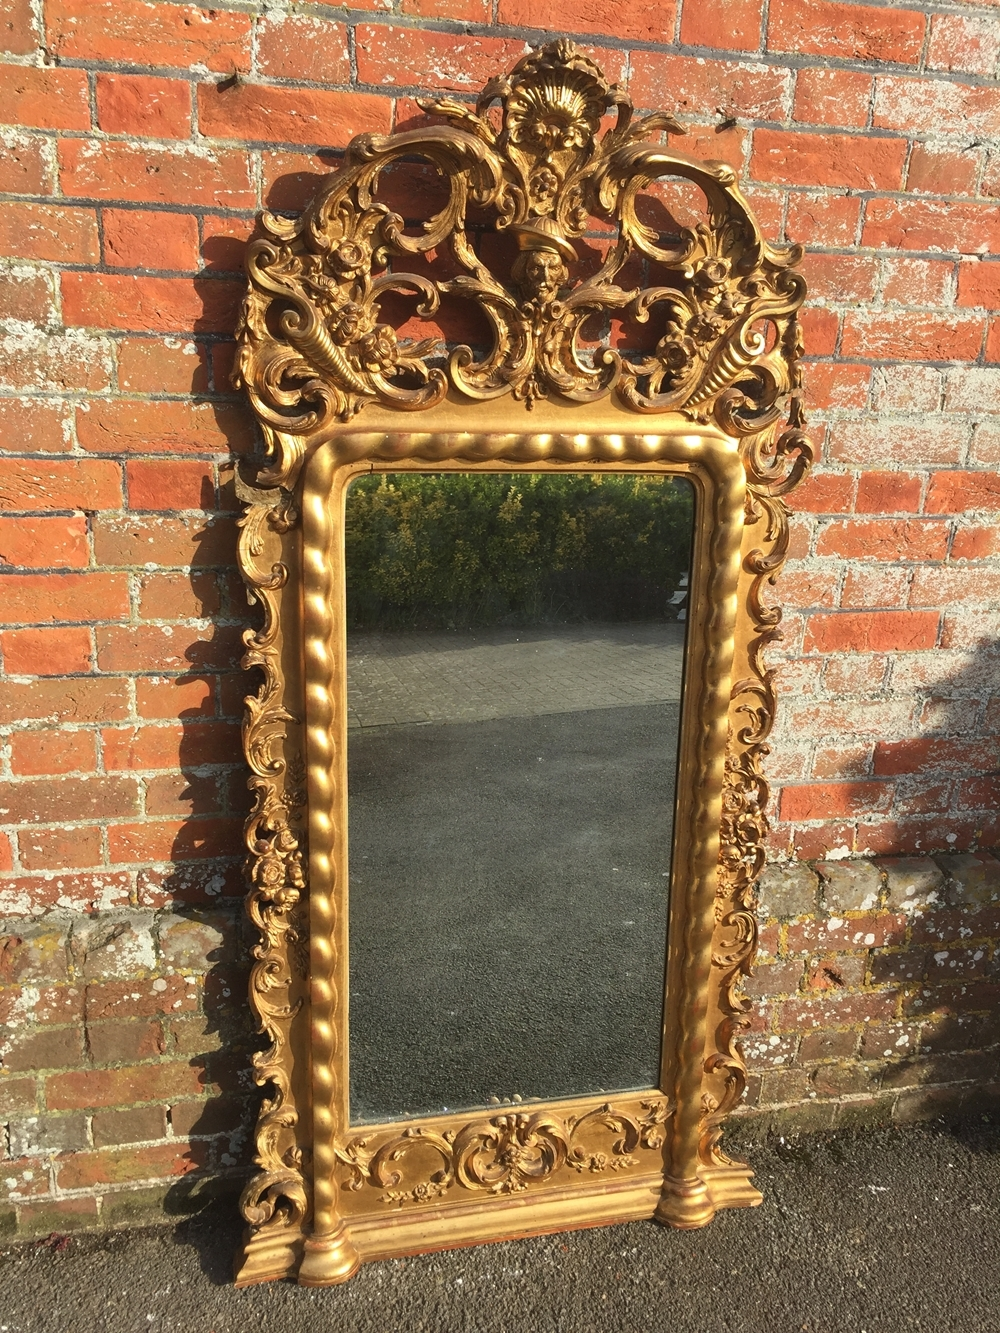 Large Overmantle Mirrors Uk Antique Overmantle Mirrors For Sale In Large Antique Mirror For Sale (Image 13 of 15)